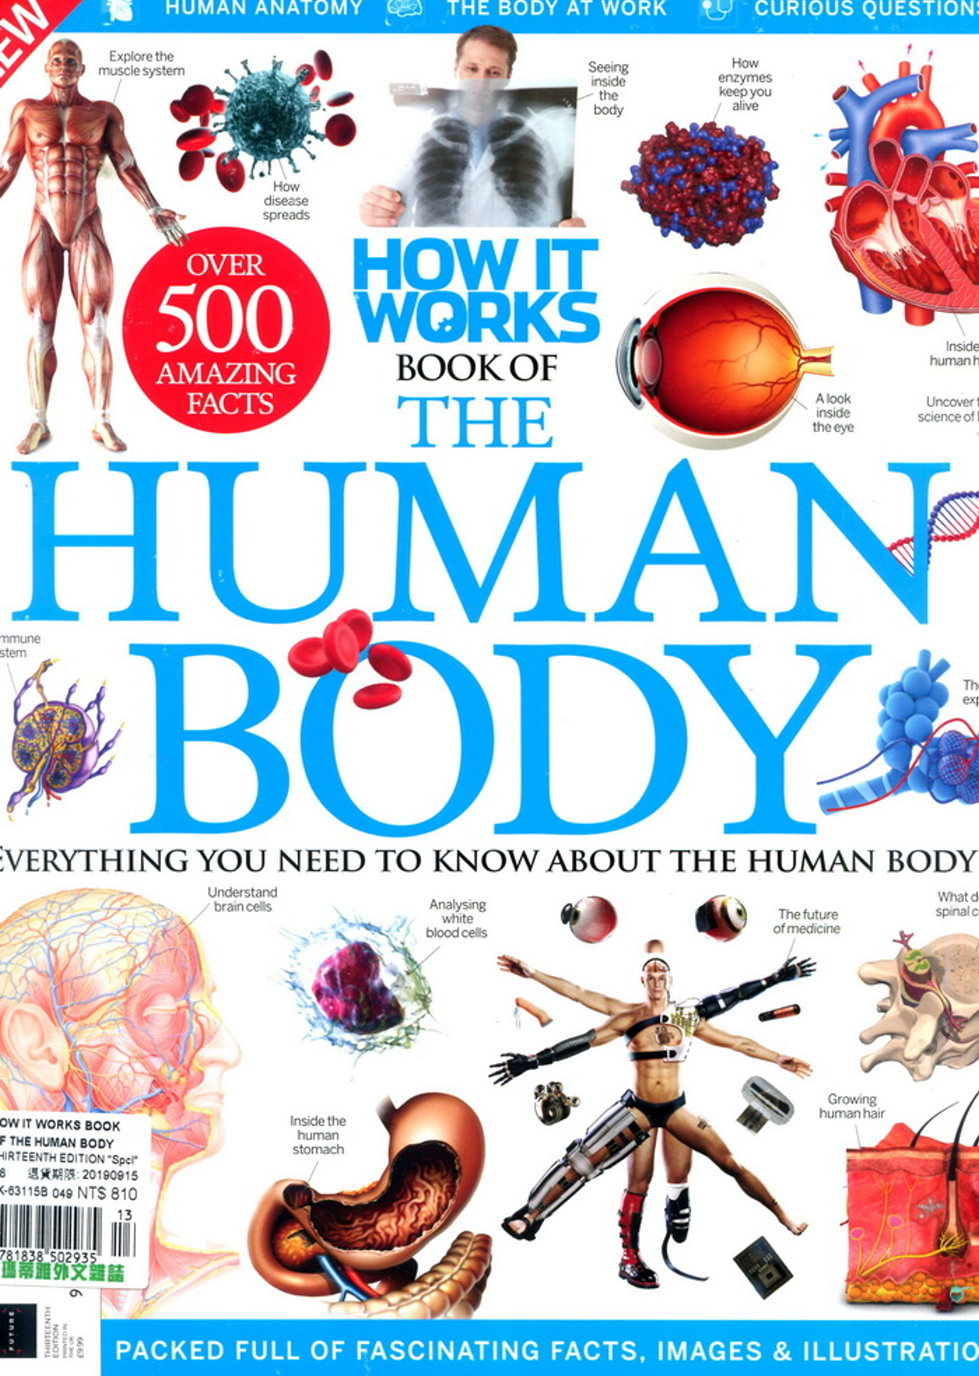 HOW IT WORKS BOOK OF THE HUMAN BODY 第13版